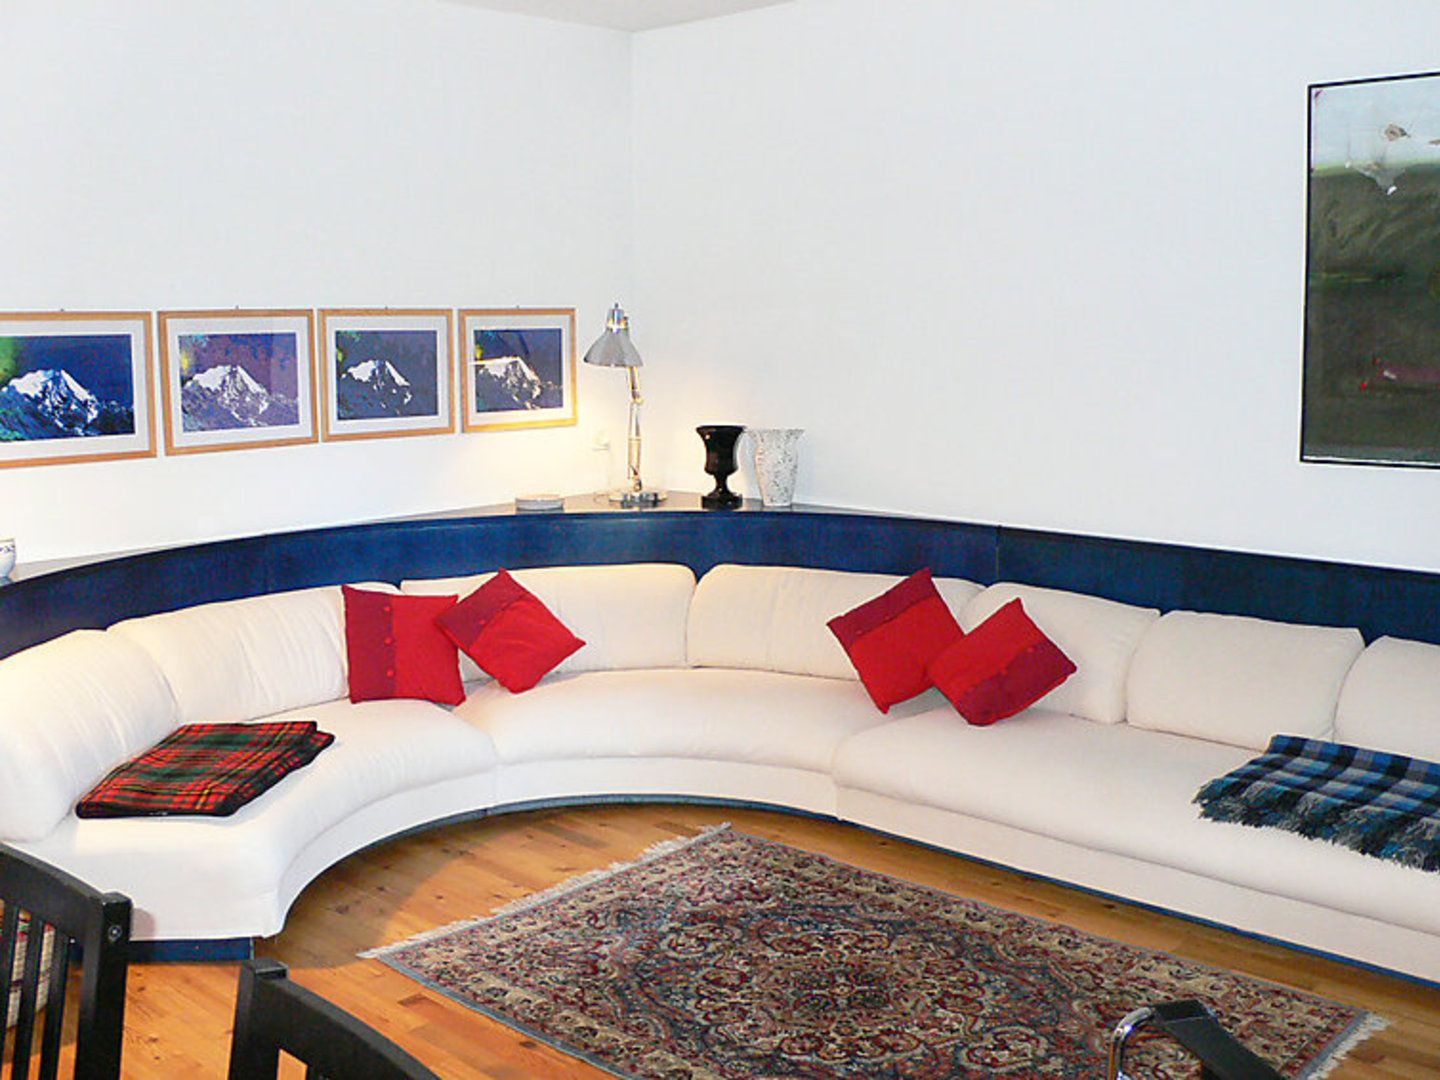 Rental 4 bedroom apartment in St. Moritz-Dorf